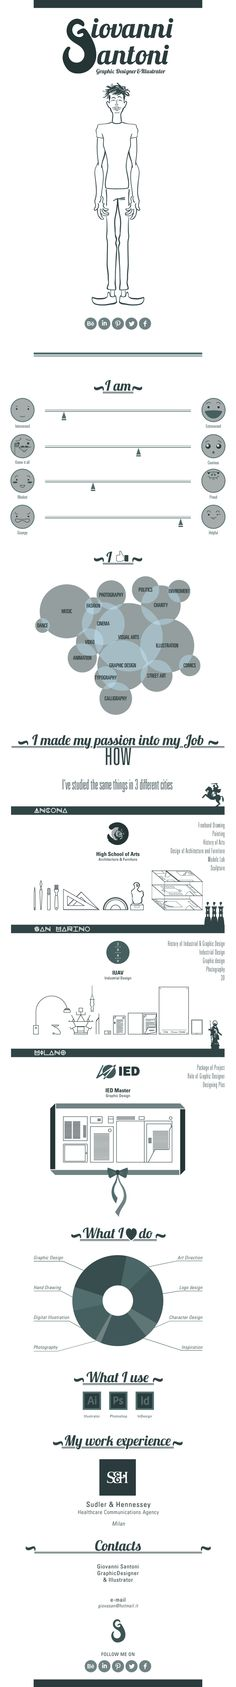 340 best Infographic and Visual Resumes images on Pinterest in 2018